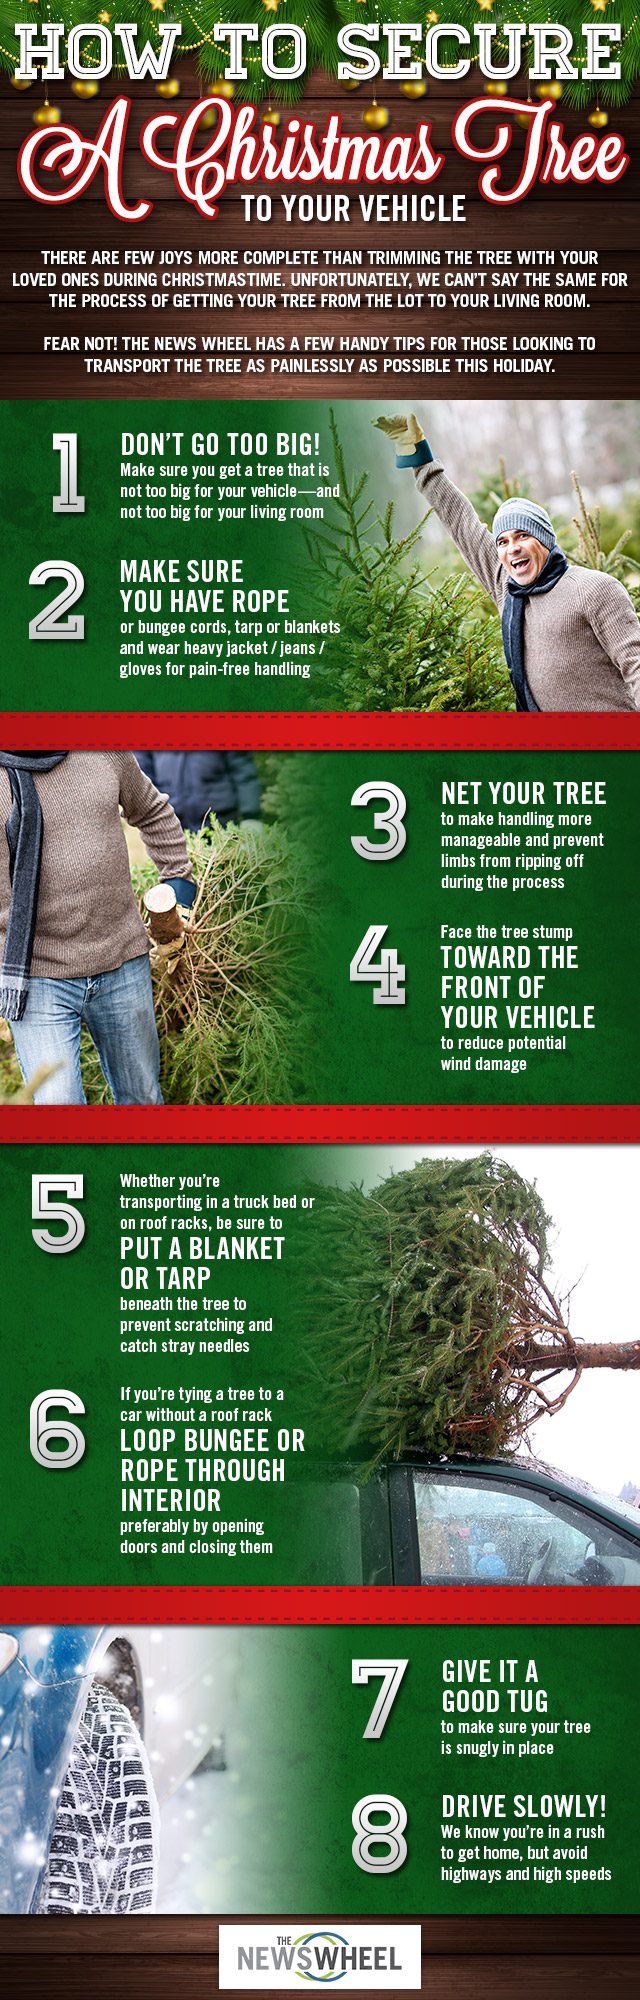 How to Secure a Christmas Tree to Your Vehicle